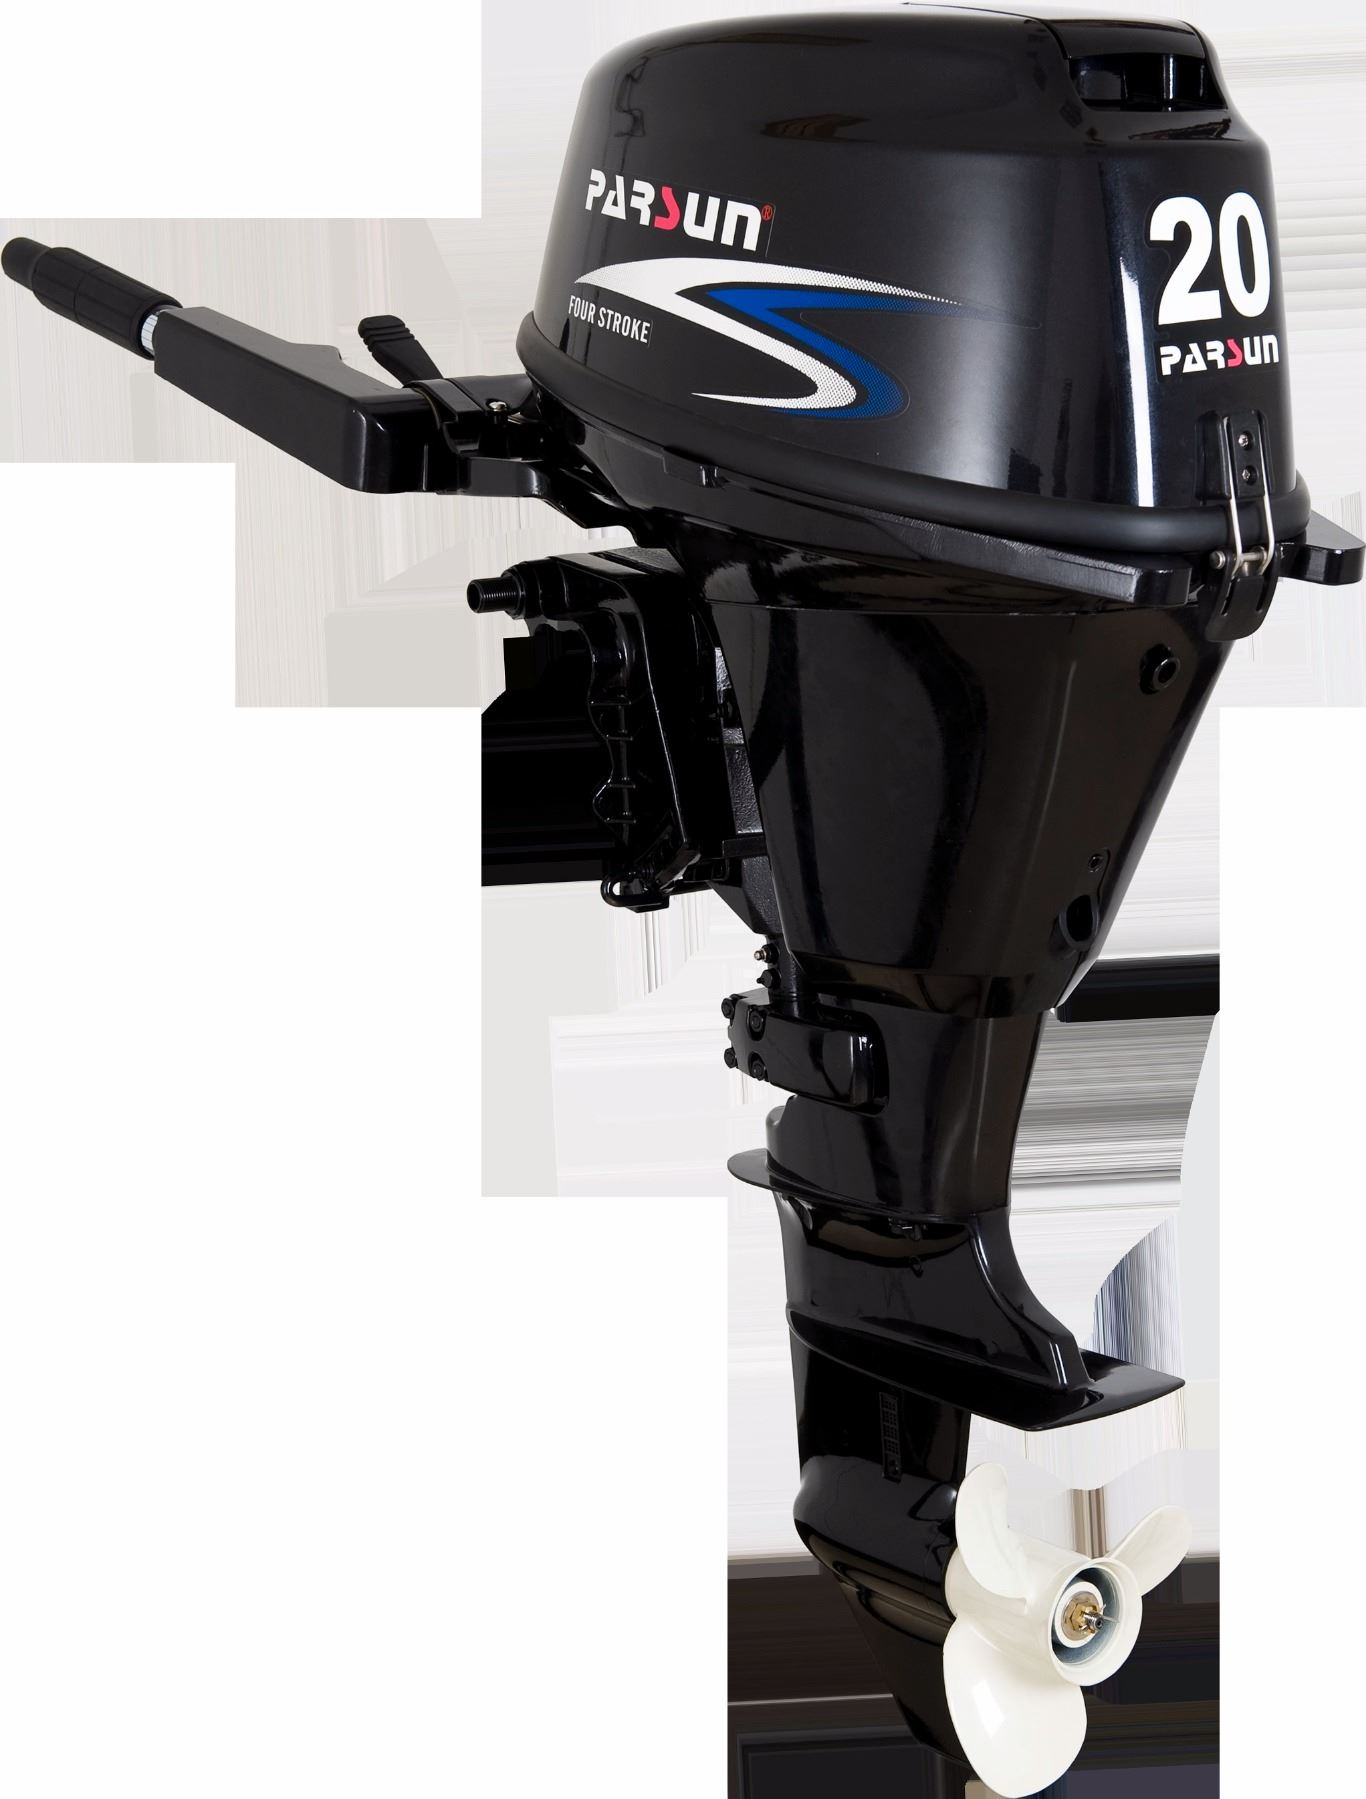 brand new parsun f20abm 20 hp four stroke outboard motor with rh liveauctionworld com